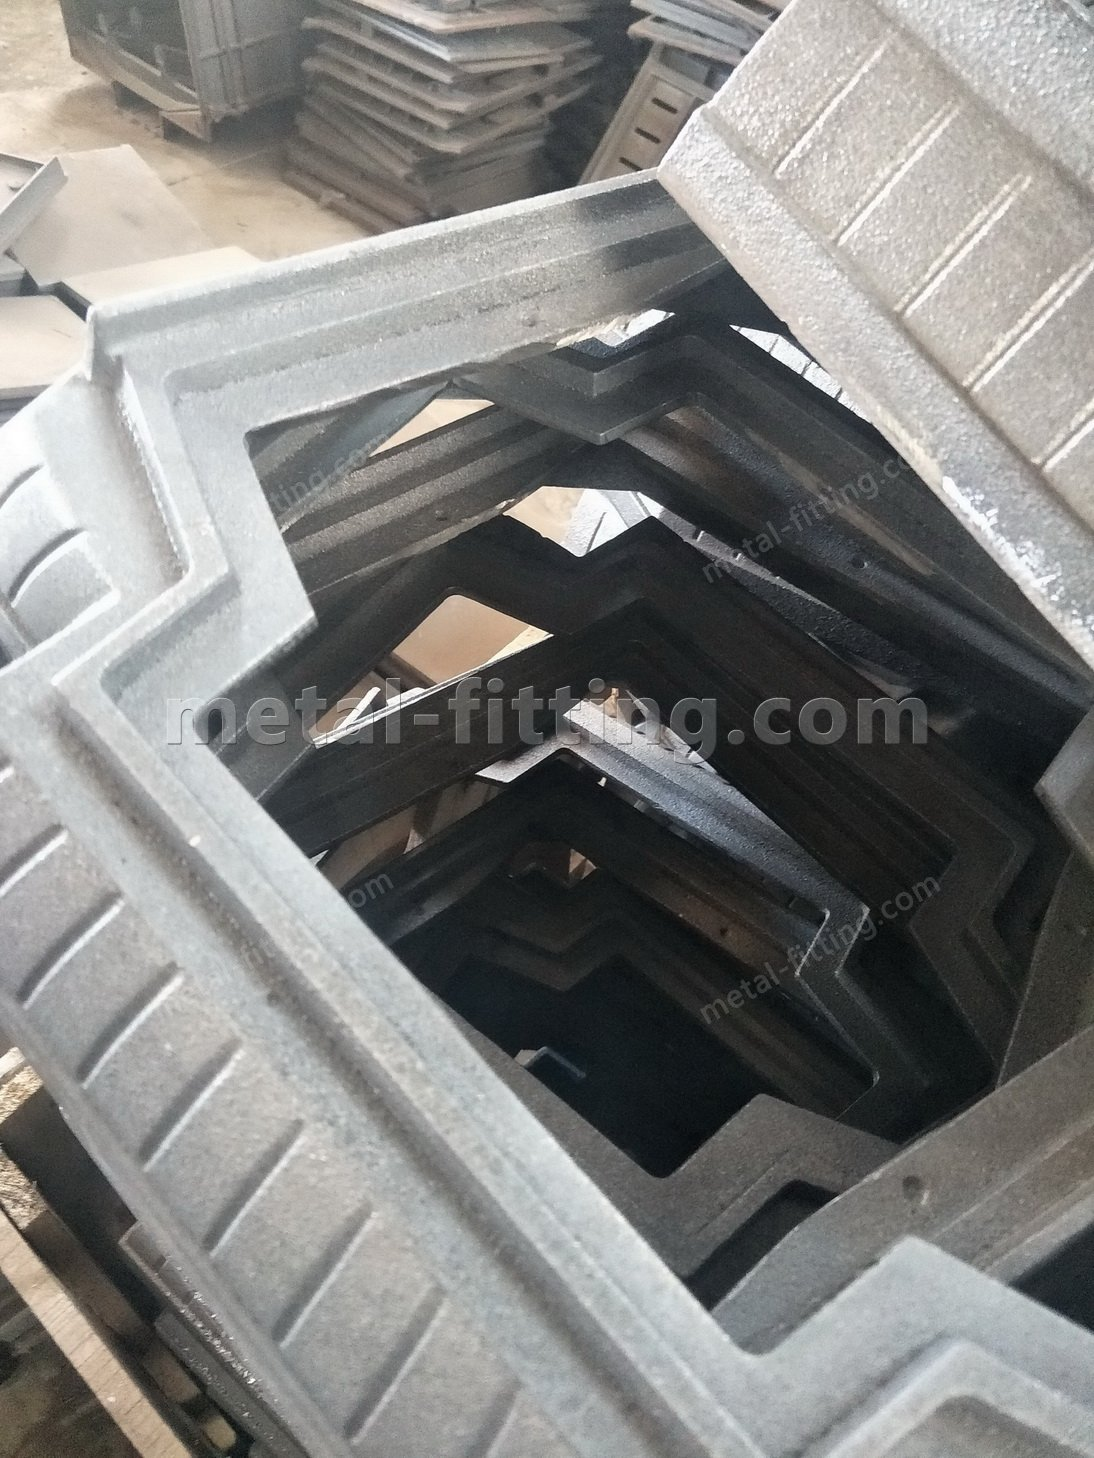 customization steel plate or other steel metal itemss-IMG20180726102746